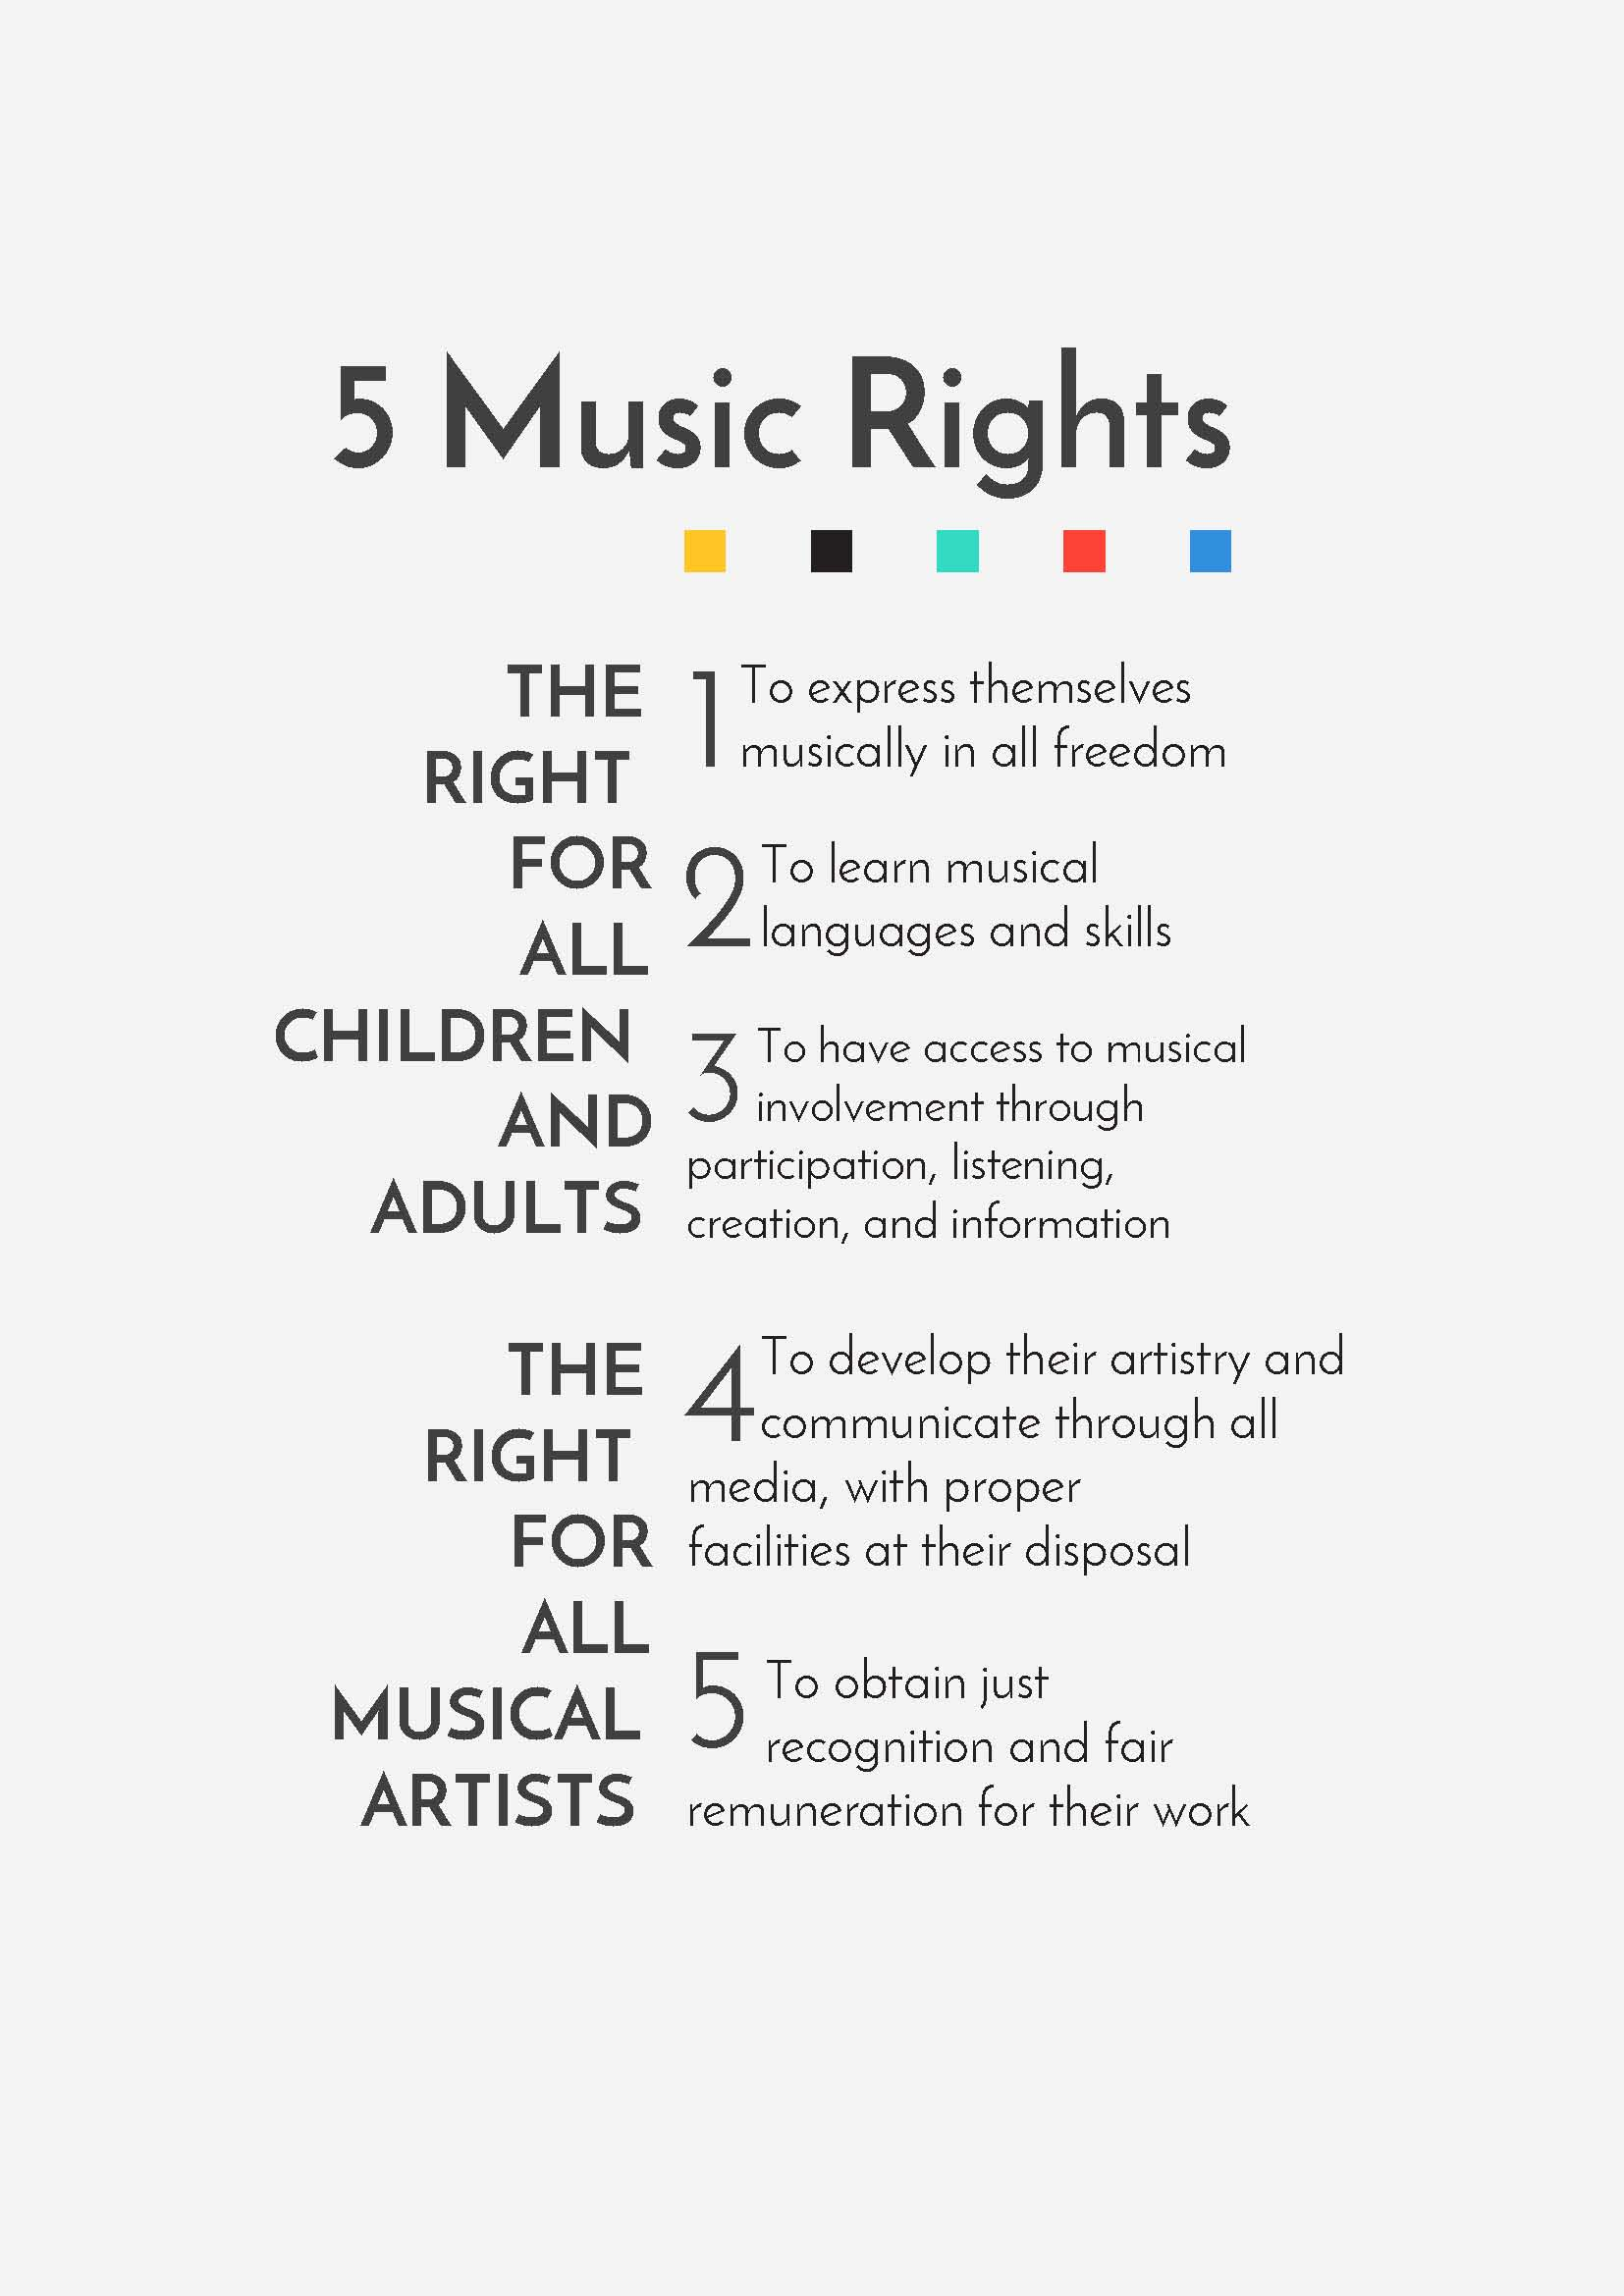 5 music rights